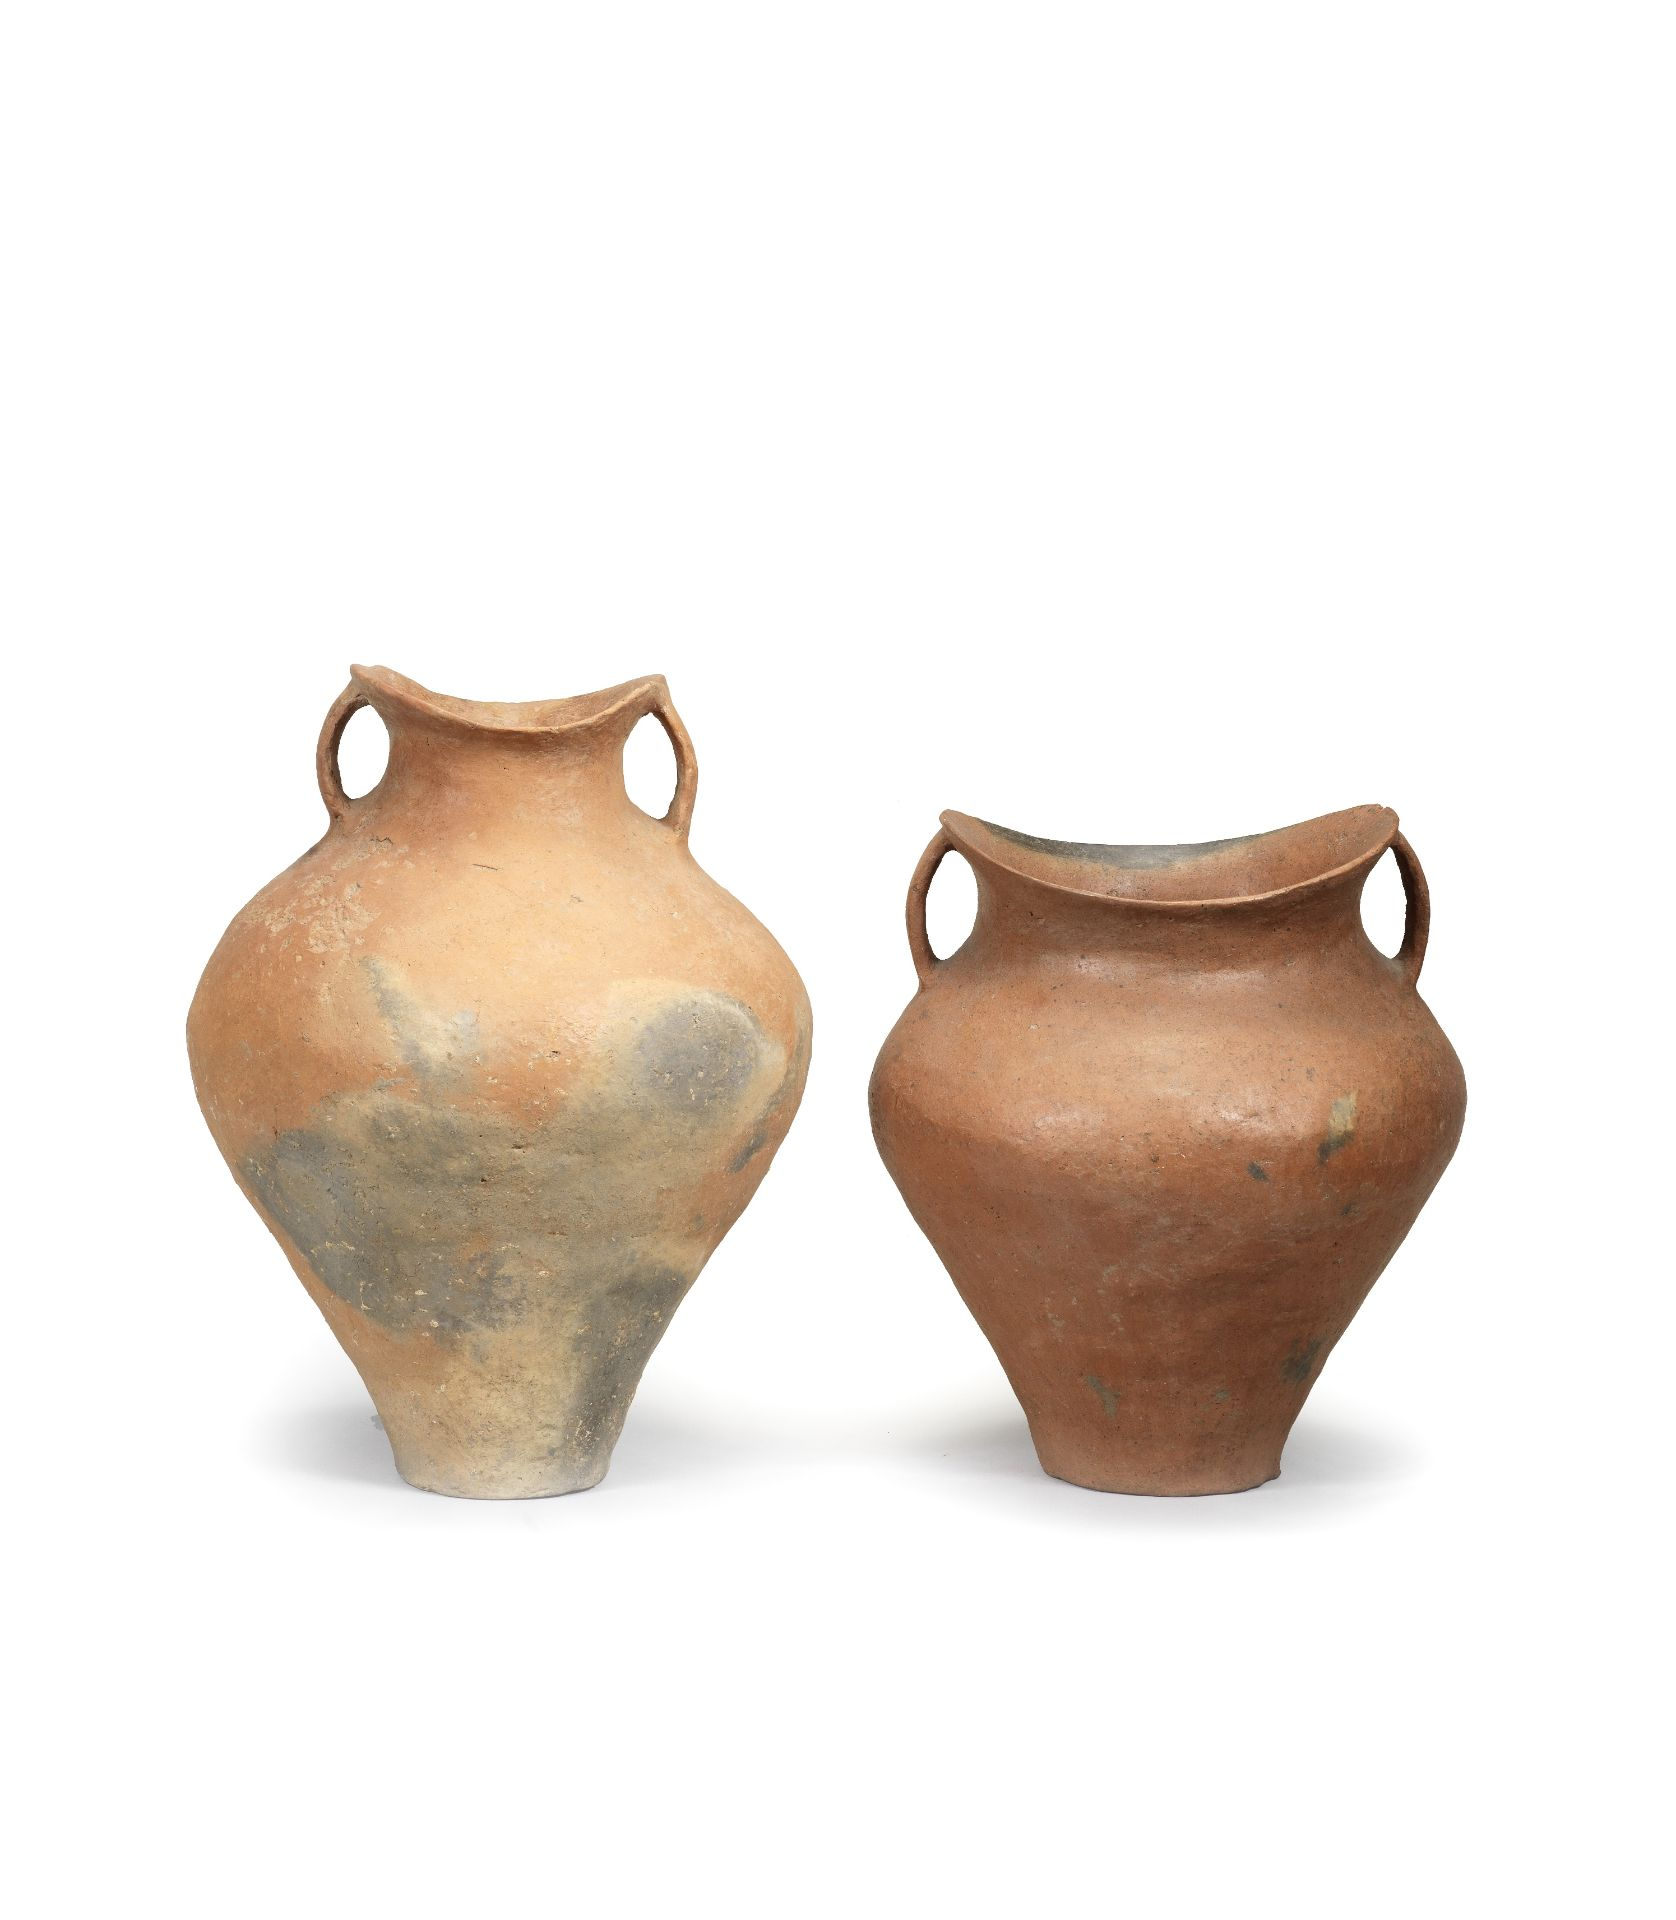 A BURNISHED POTTERY JAR Neolithic Period, Siwa Culture